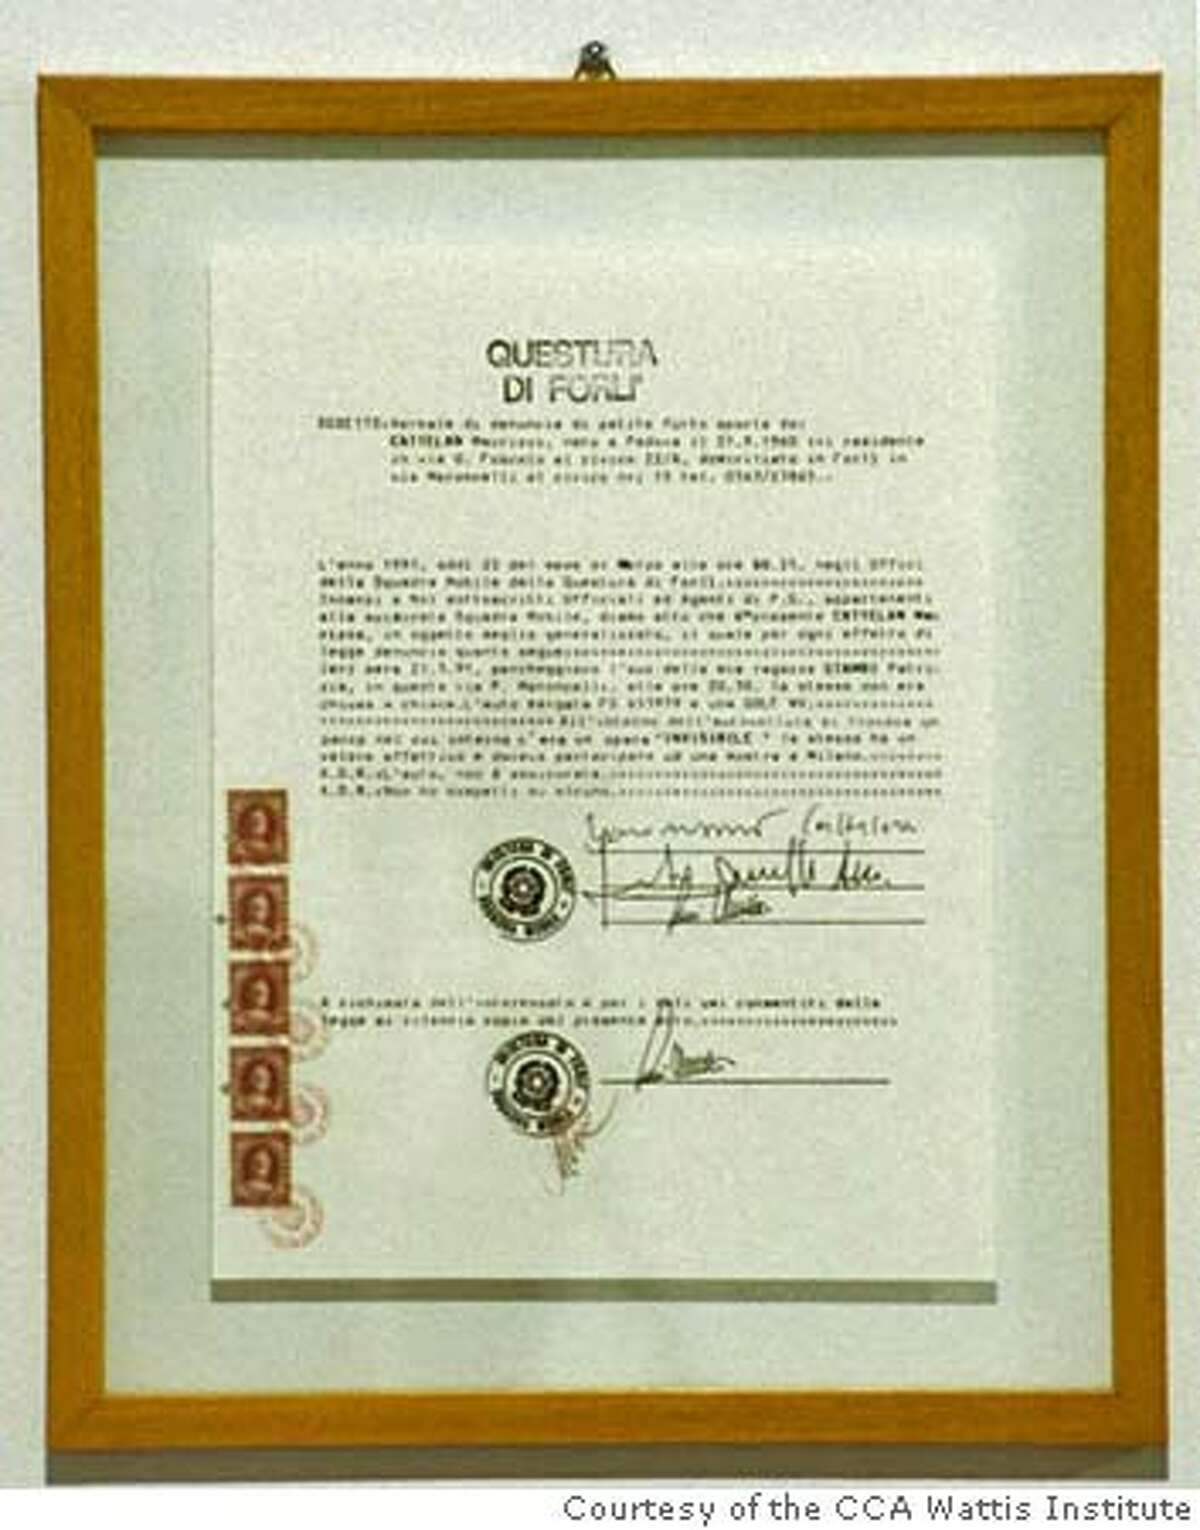 """""""Denuncia"""" (1991) police report generated by Mauricio Cattelan. Courtesy of the CCA Wattis Institute, San Francisco"""